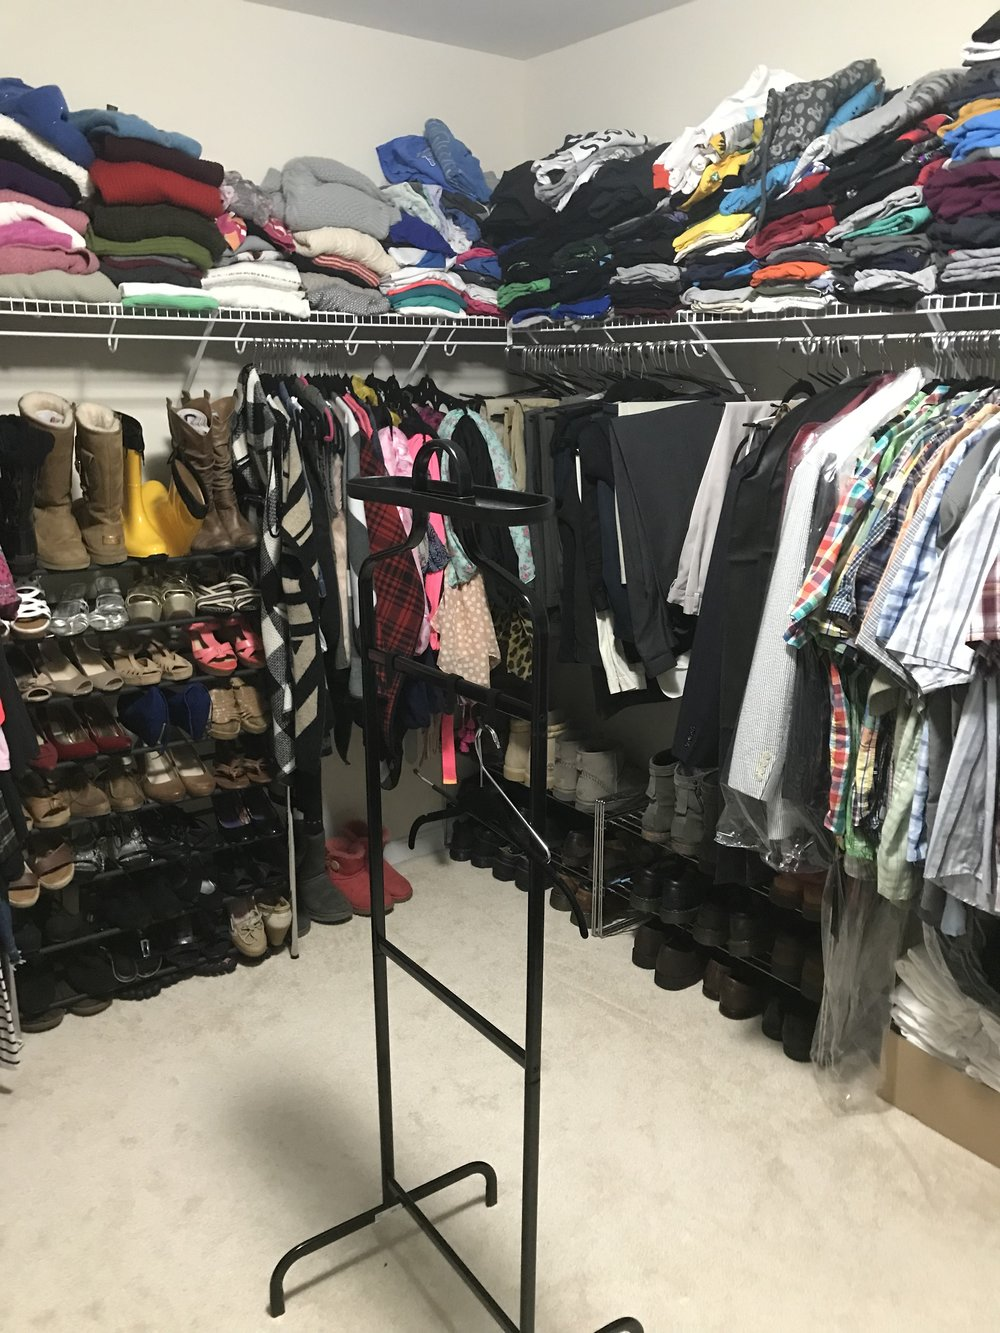 Get Ready For the Spring - Clean and Organise Your Closet By Alex